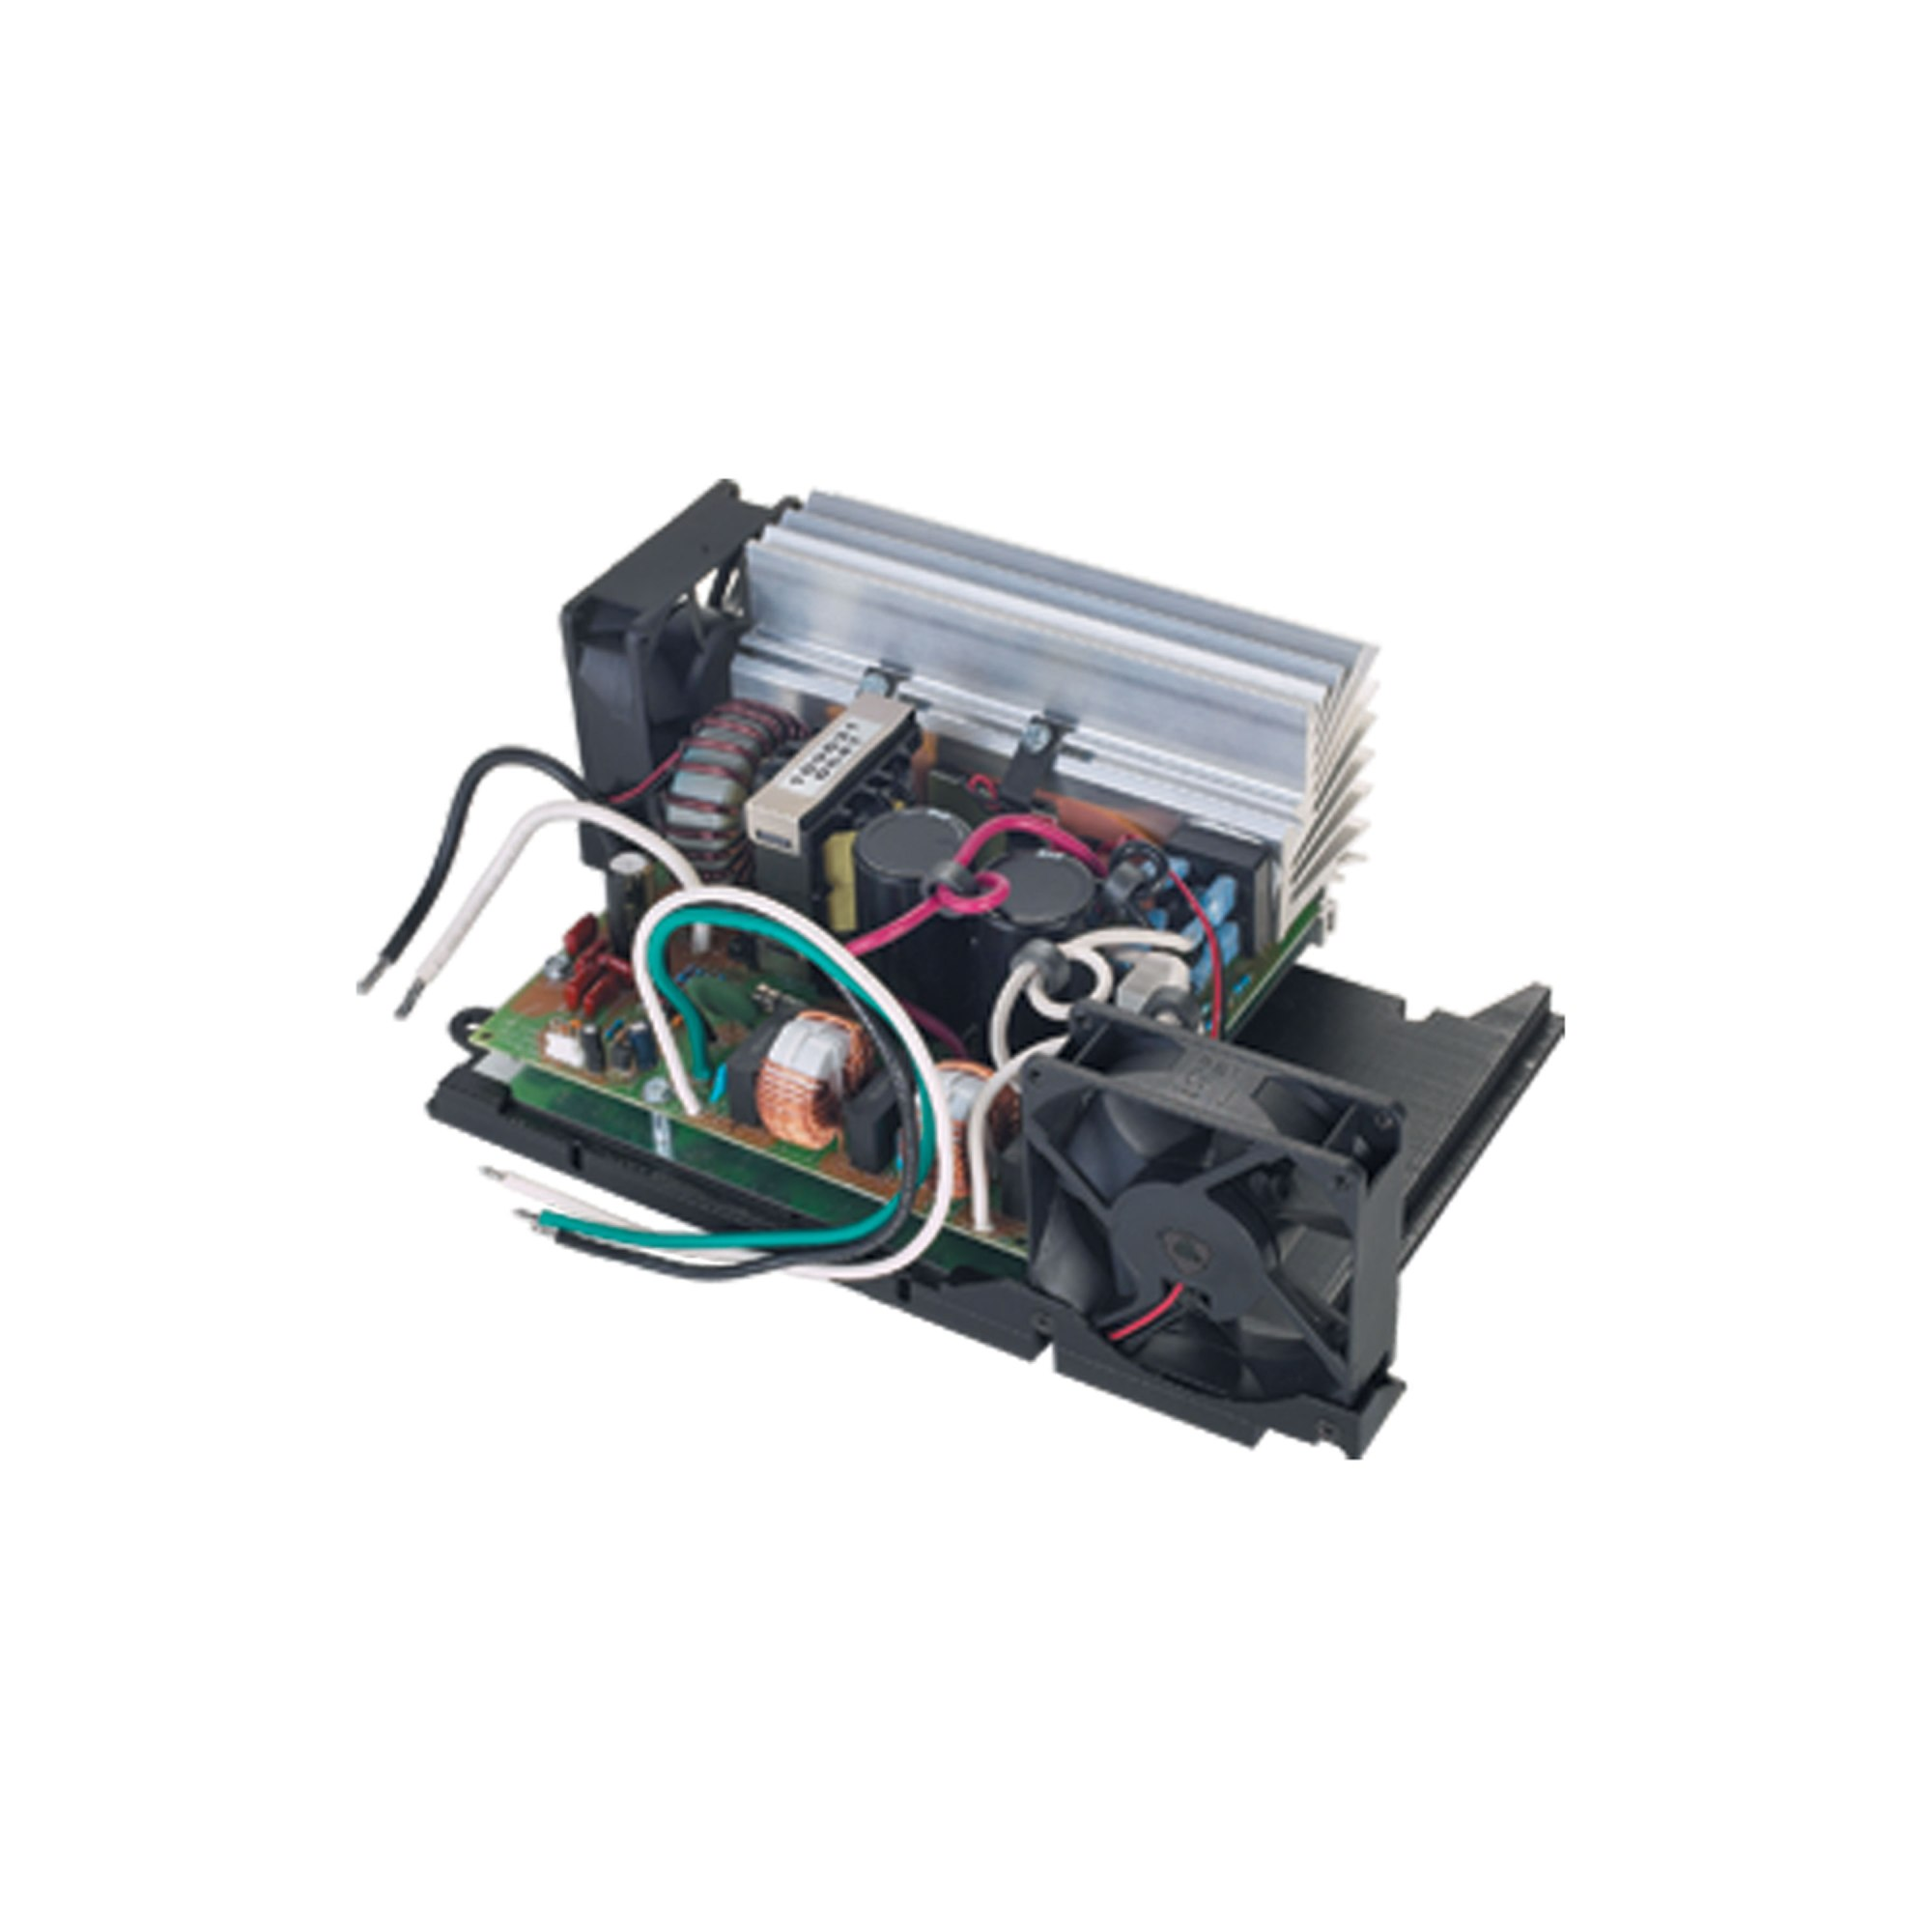 hight resolution of progressive dynamics pd4645v inteli power 4600 series converter charger with charge wizard 45